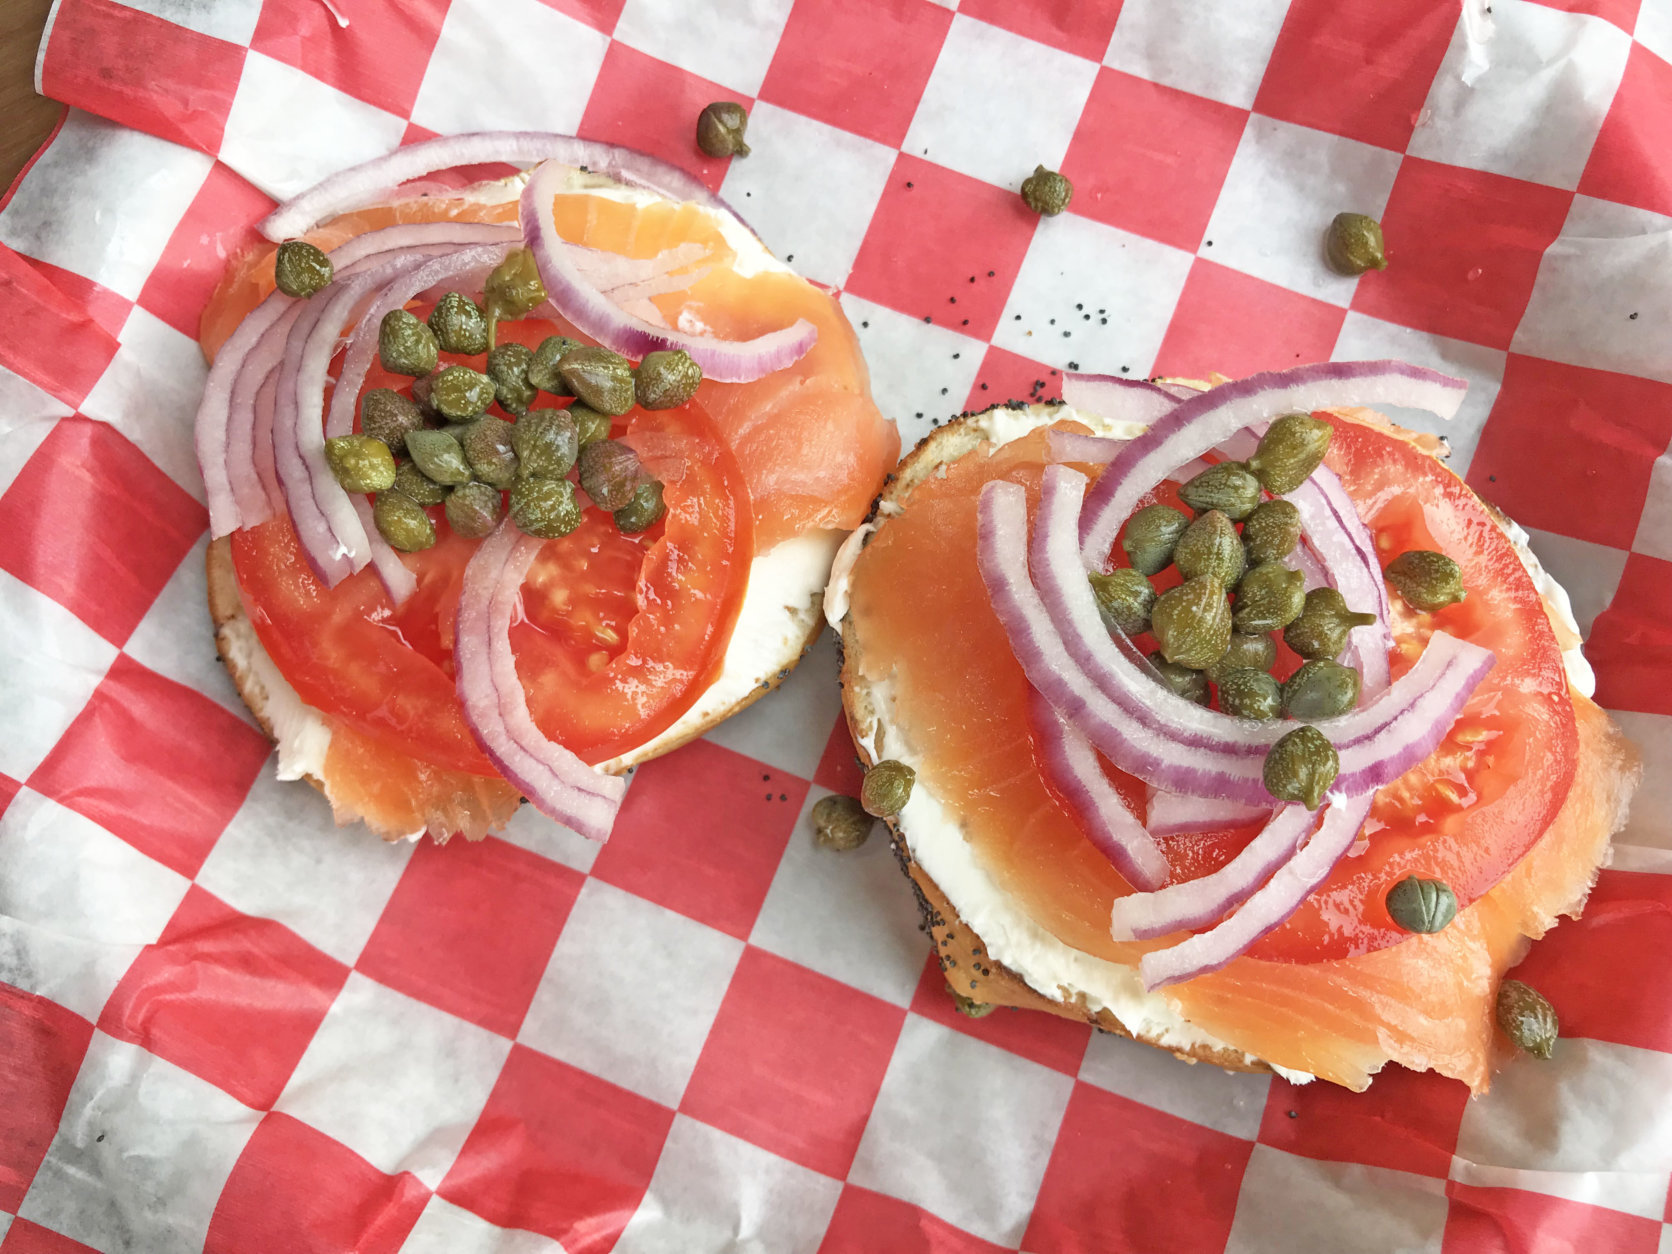 Bagel Uprising is a Del Ray, Virginia-based bagel shop from local and lawyer Chad Breckinridge. (WTOP/Rachel Nania)